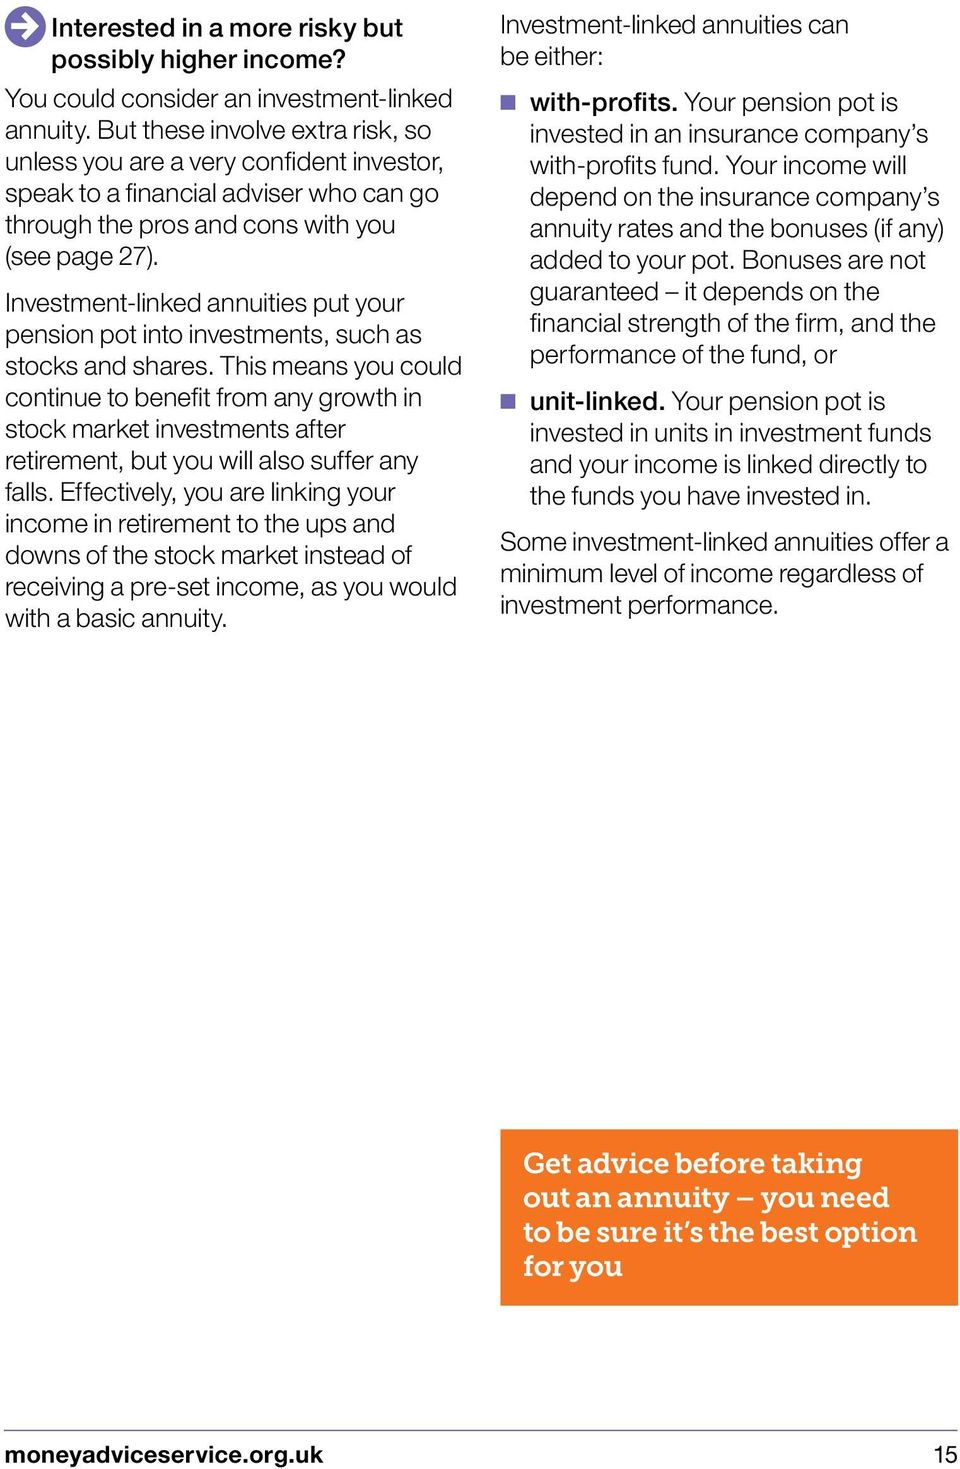 Investment-linked annuities put your pension pot into investments, such as stocks and shares.